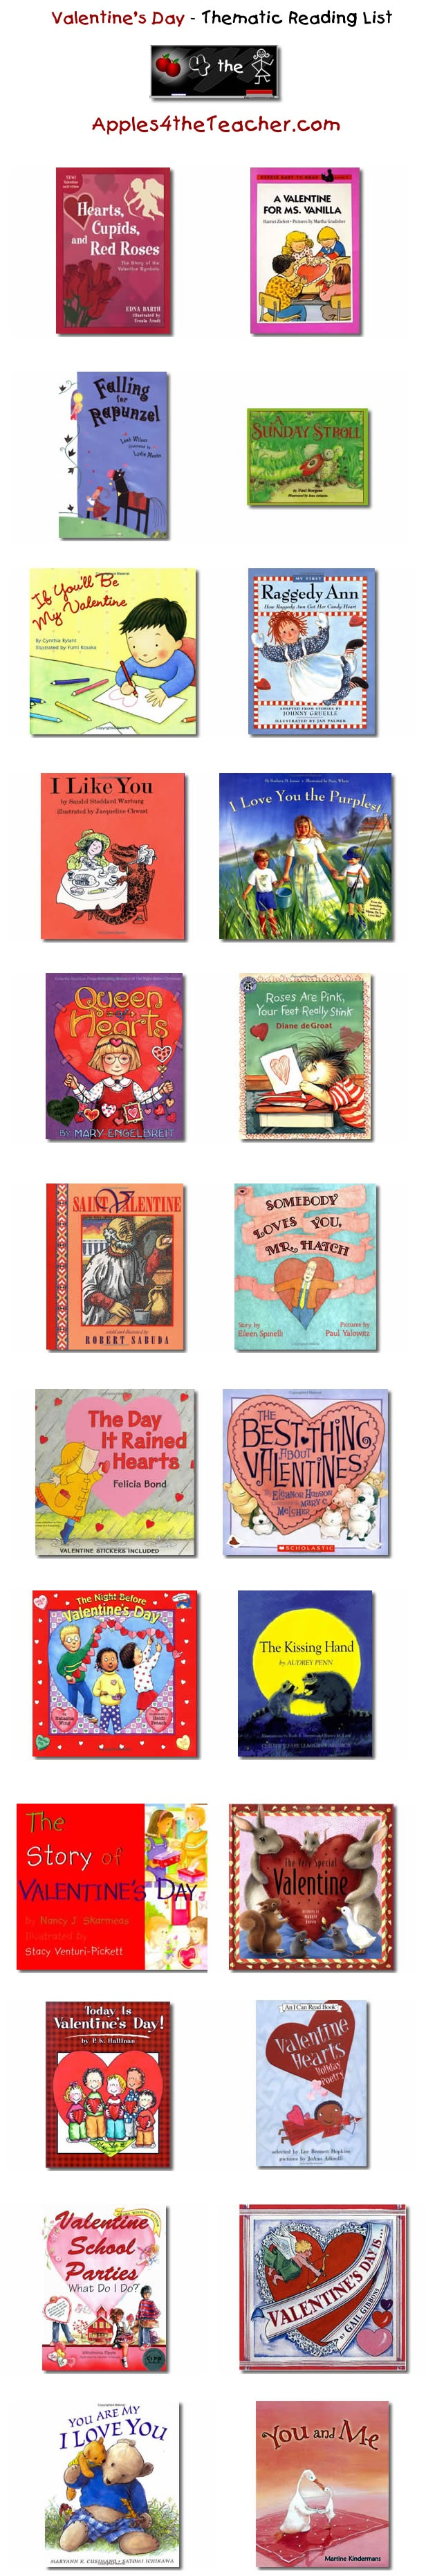 Suggested thematic reading list for Valentines Day - Valentine's Day books for kids.